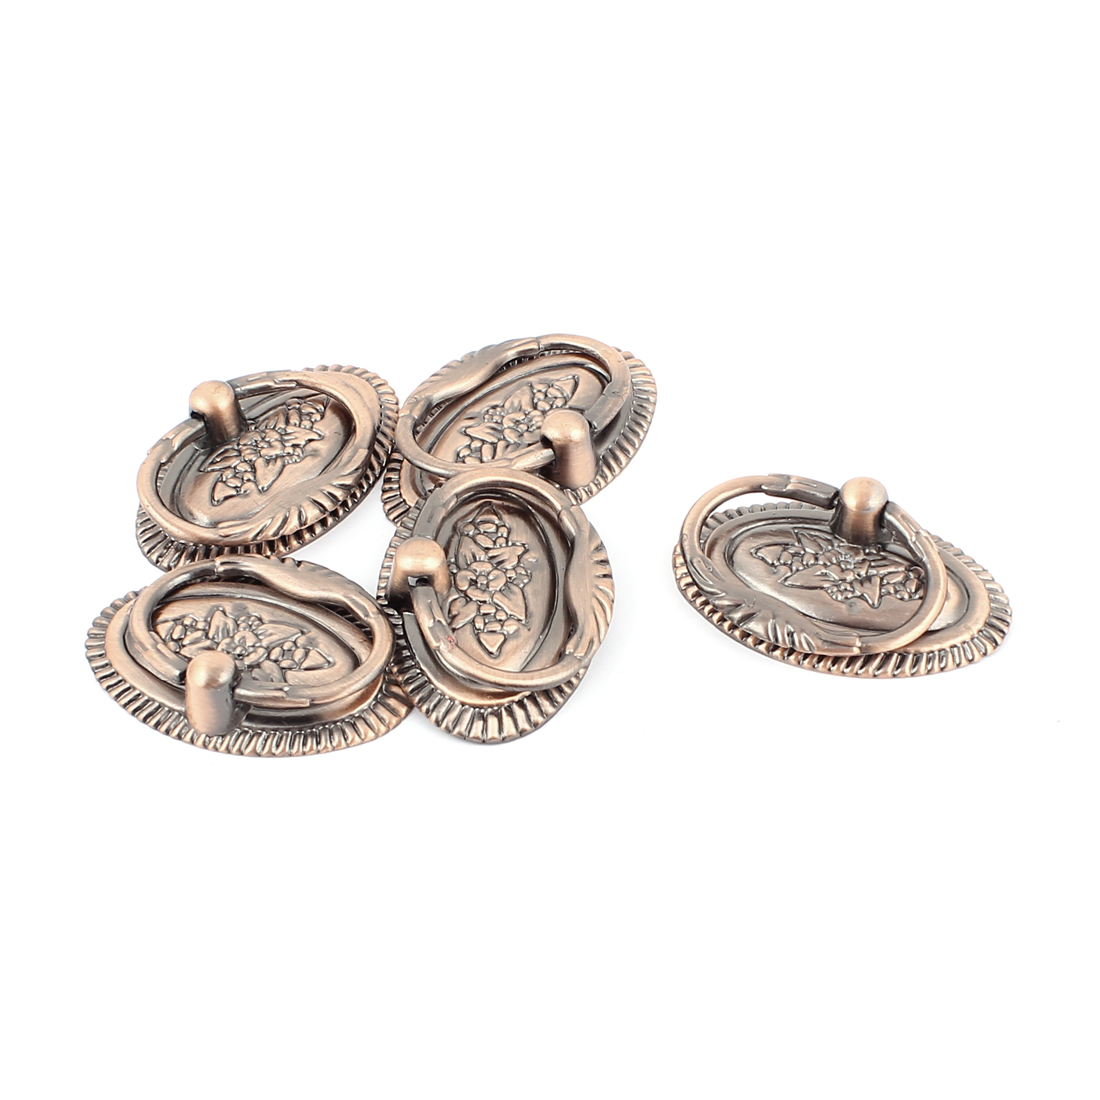 Drawer Dresser Cupboard Door Vintage Style Ring Pull Handle Knobs Copper Tone 5pcs